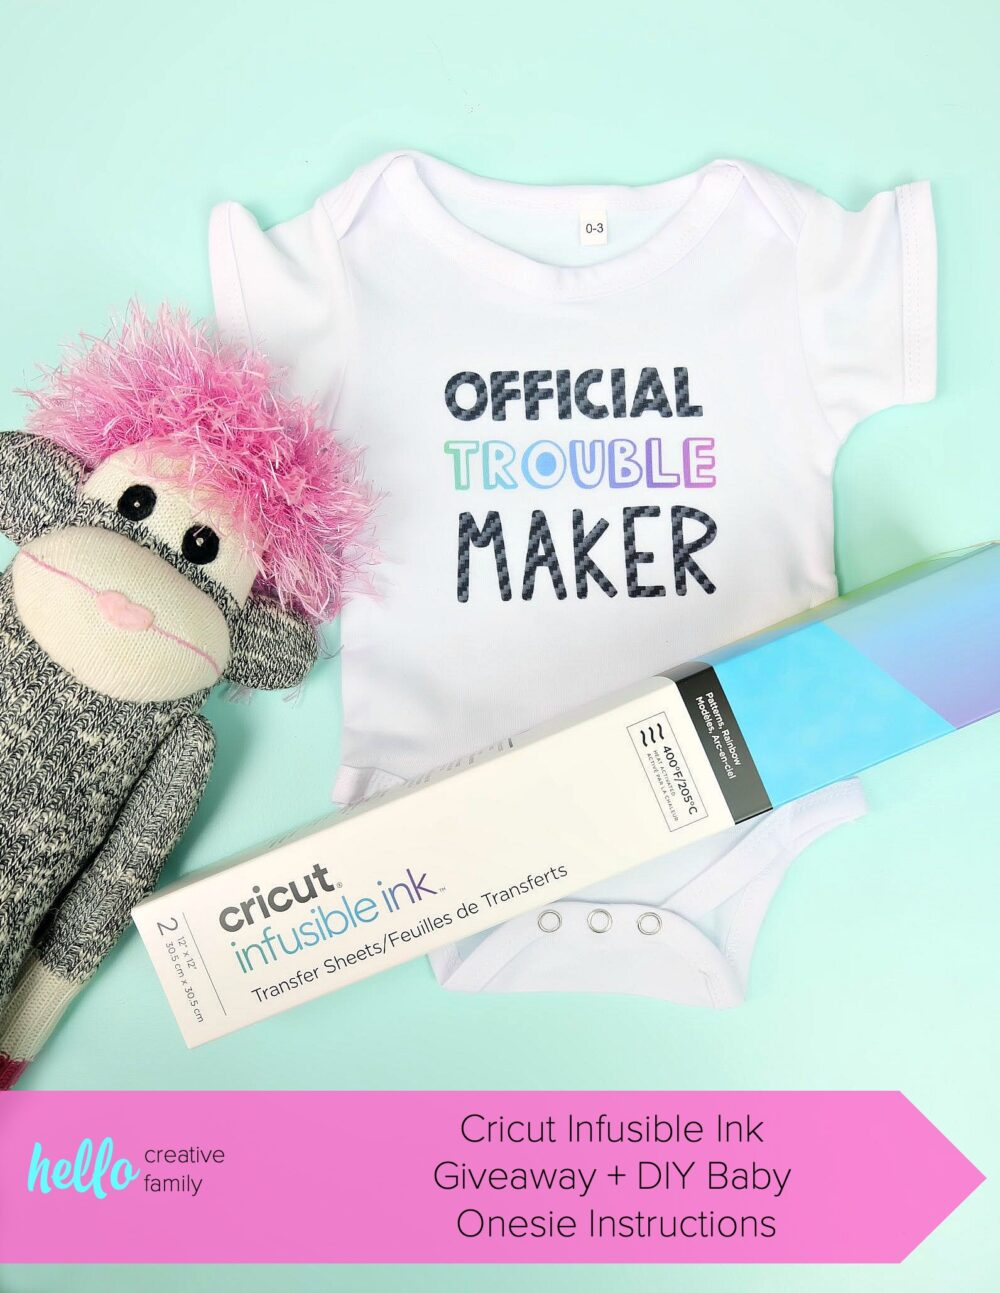 Cricut Infusible Ink Giveaway + Adorable Baby Onesie